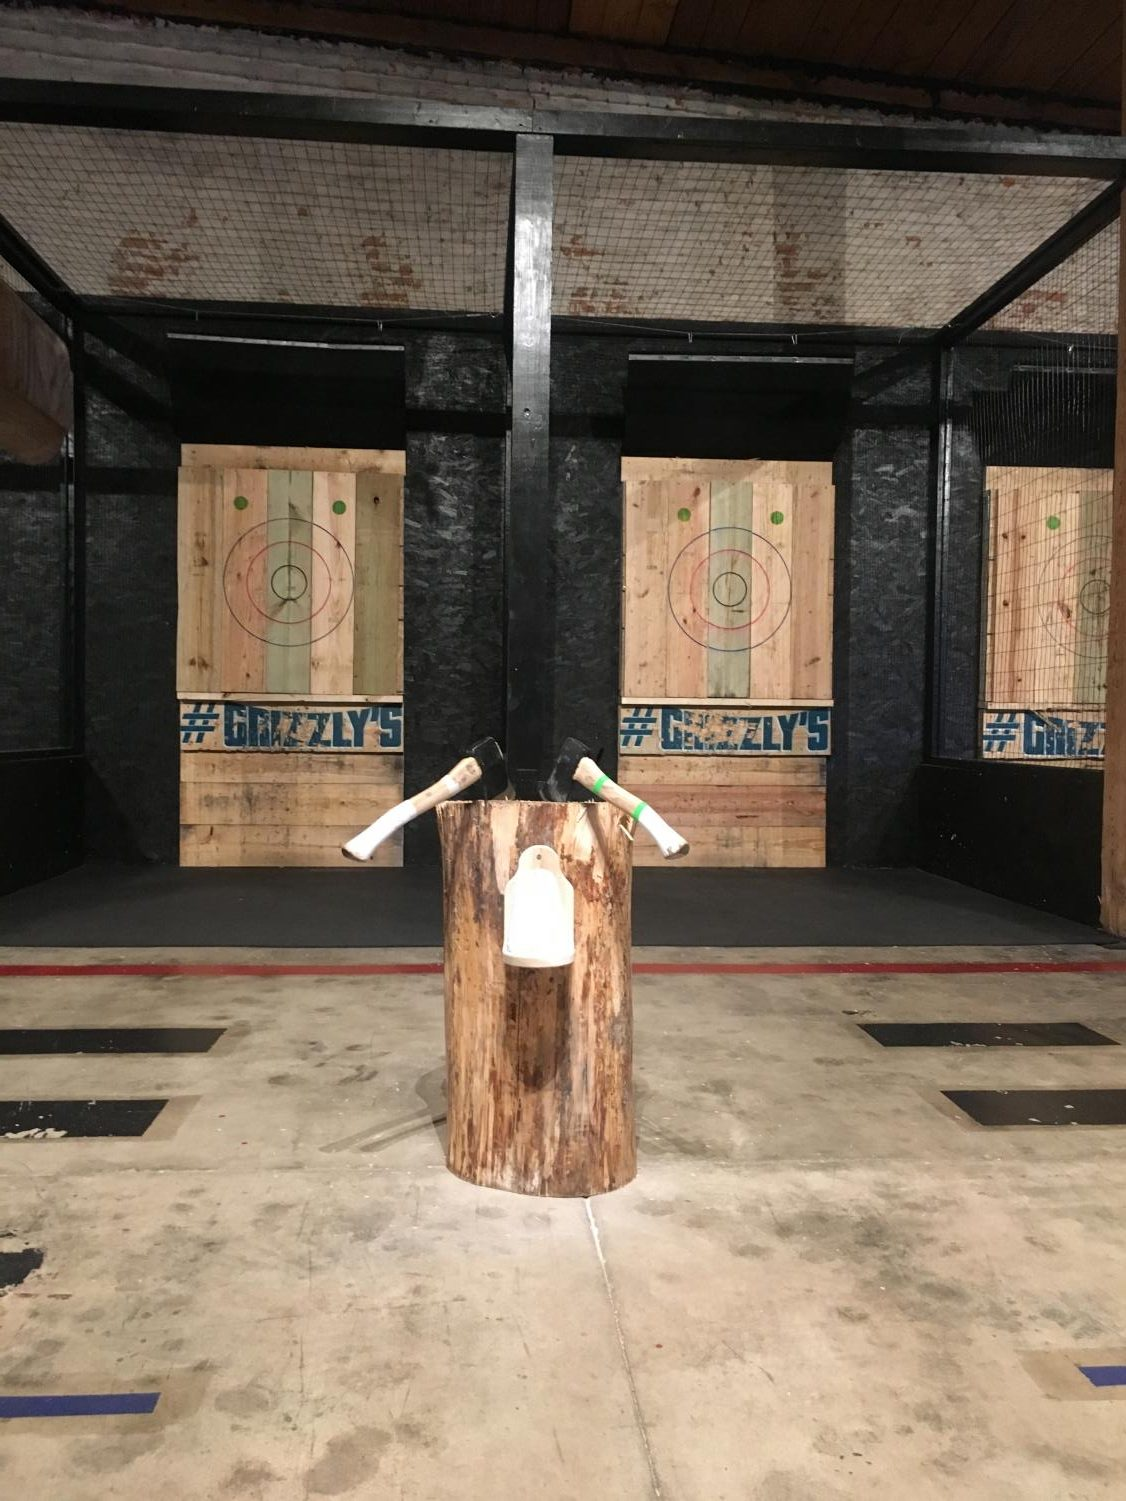 Grizzly's Hatchet House Among New Entertainment Growing in Danville